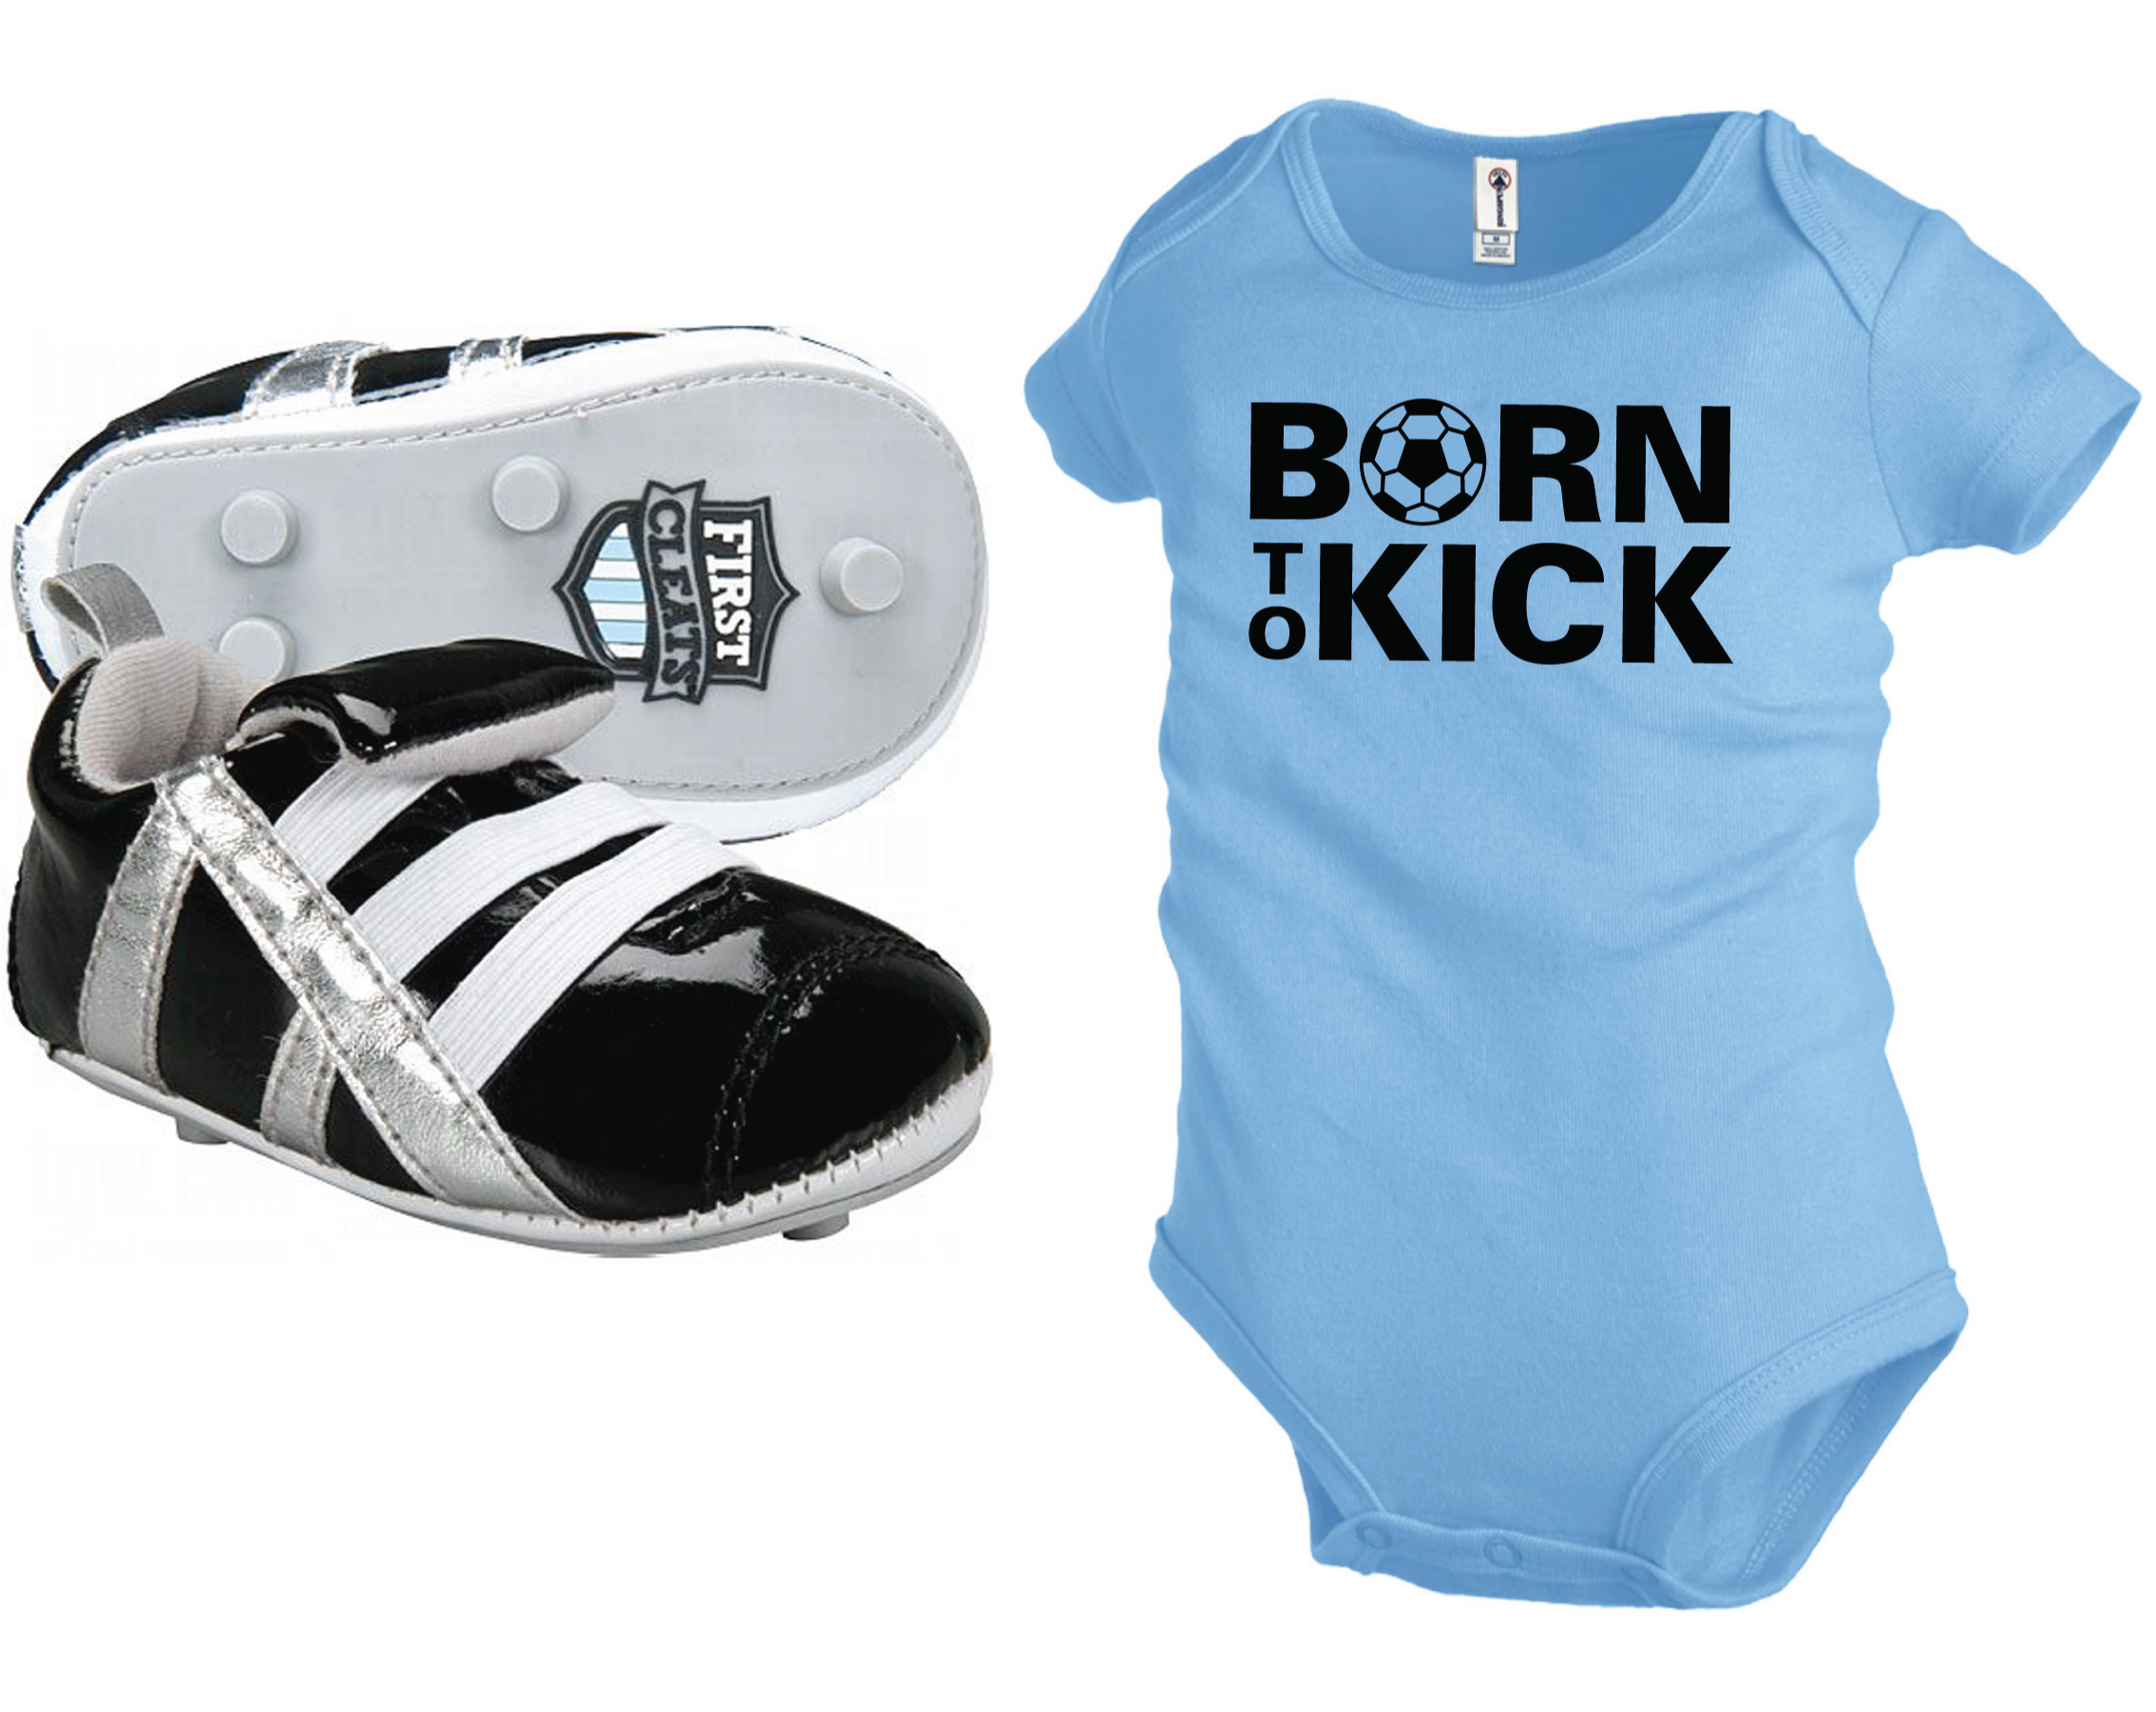 First Cleats newborn baby shoes with sky blue Born To Kick Onesie by Code Four Athletics